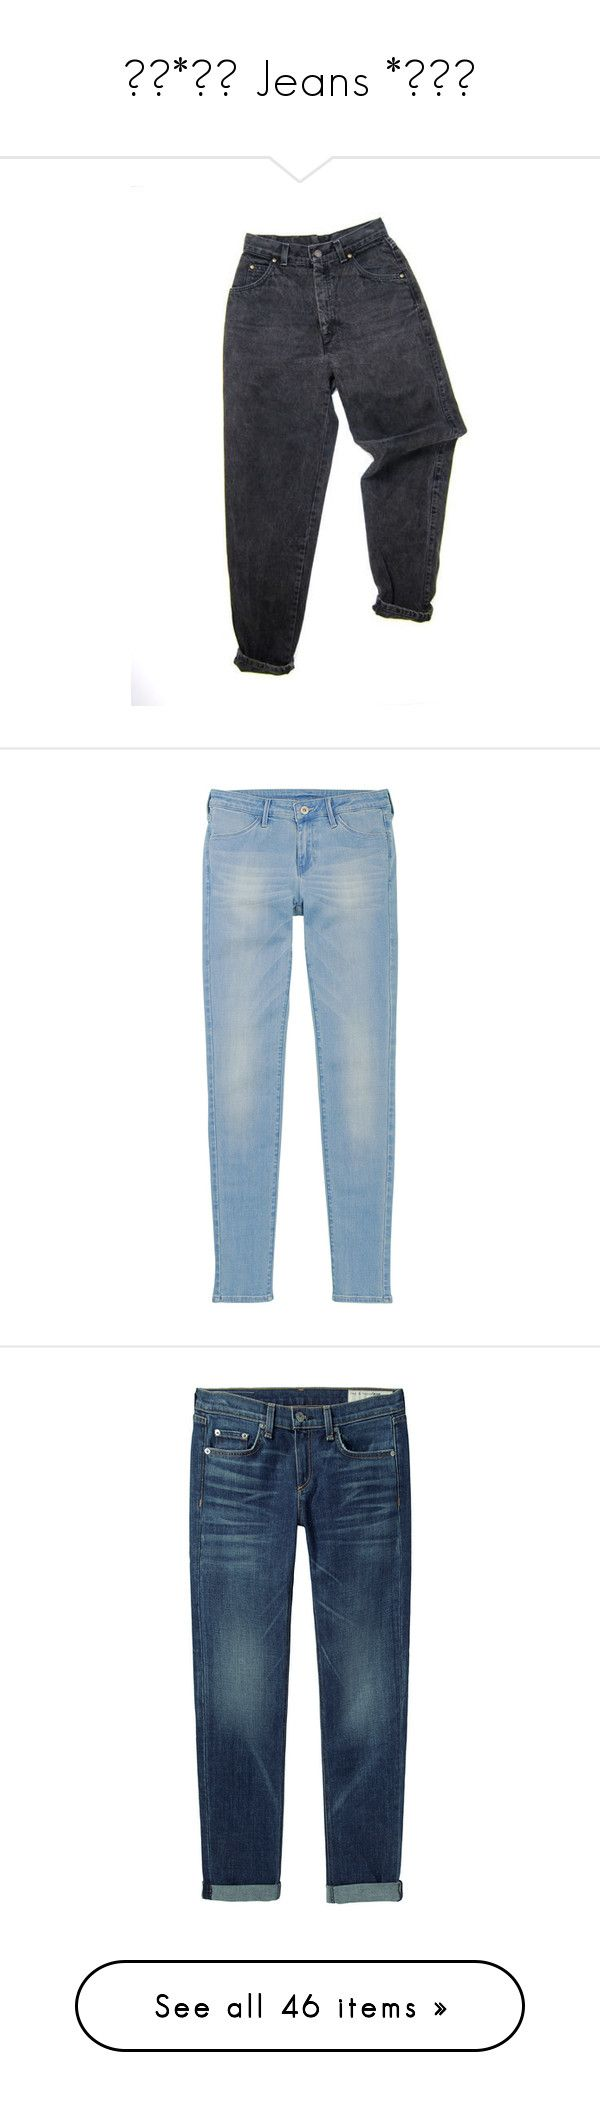 """""""゚✧*・゚ Jeans *・゚✧"""" by be-robinson ❤ liked on Polyvore featuring jeans, pants, bottoms, clothing - trousers, clothes - pants, faded jeans, creased jeans, stretchy jeans, blue jeans and uniqlo jeans"""